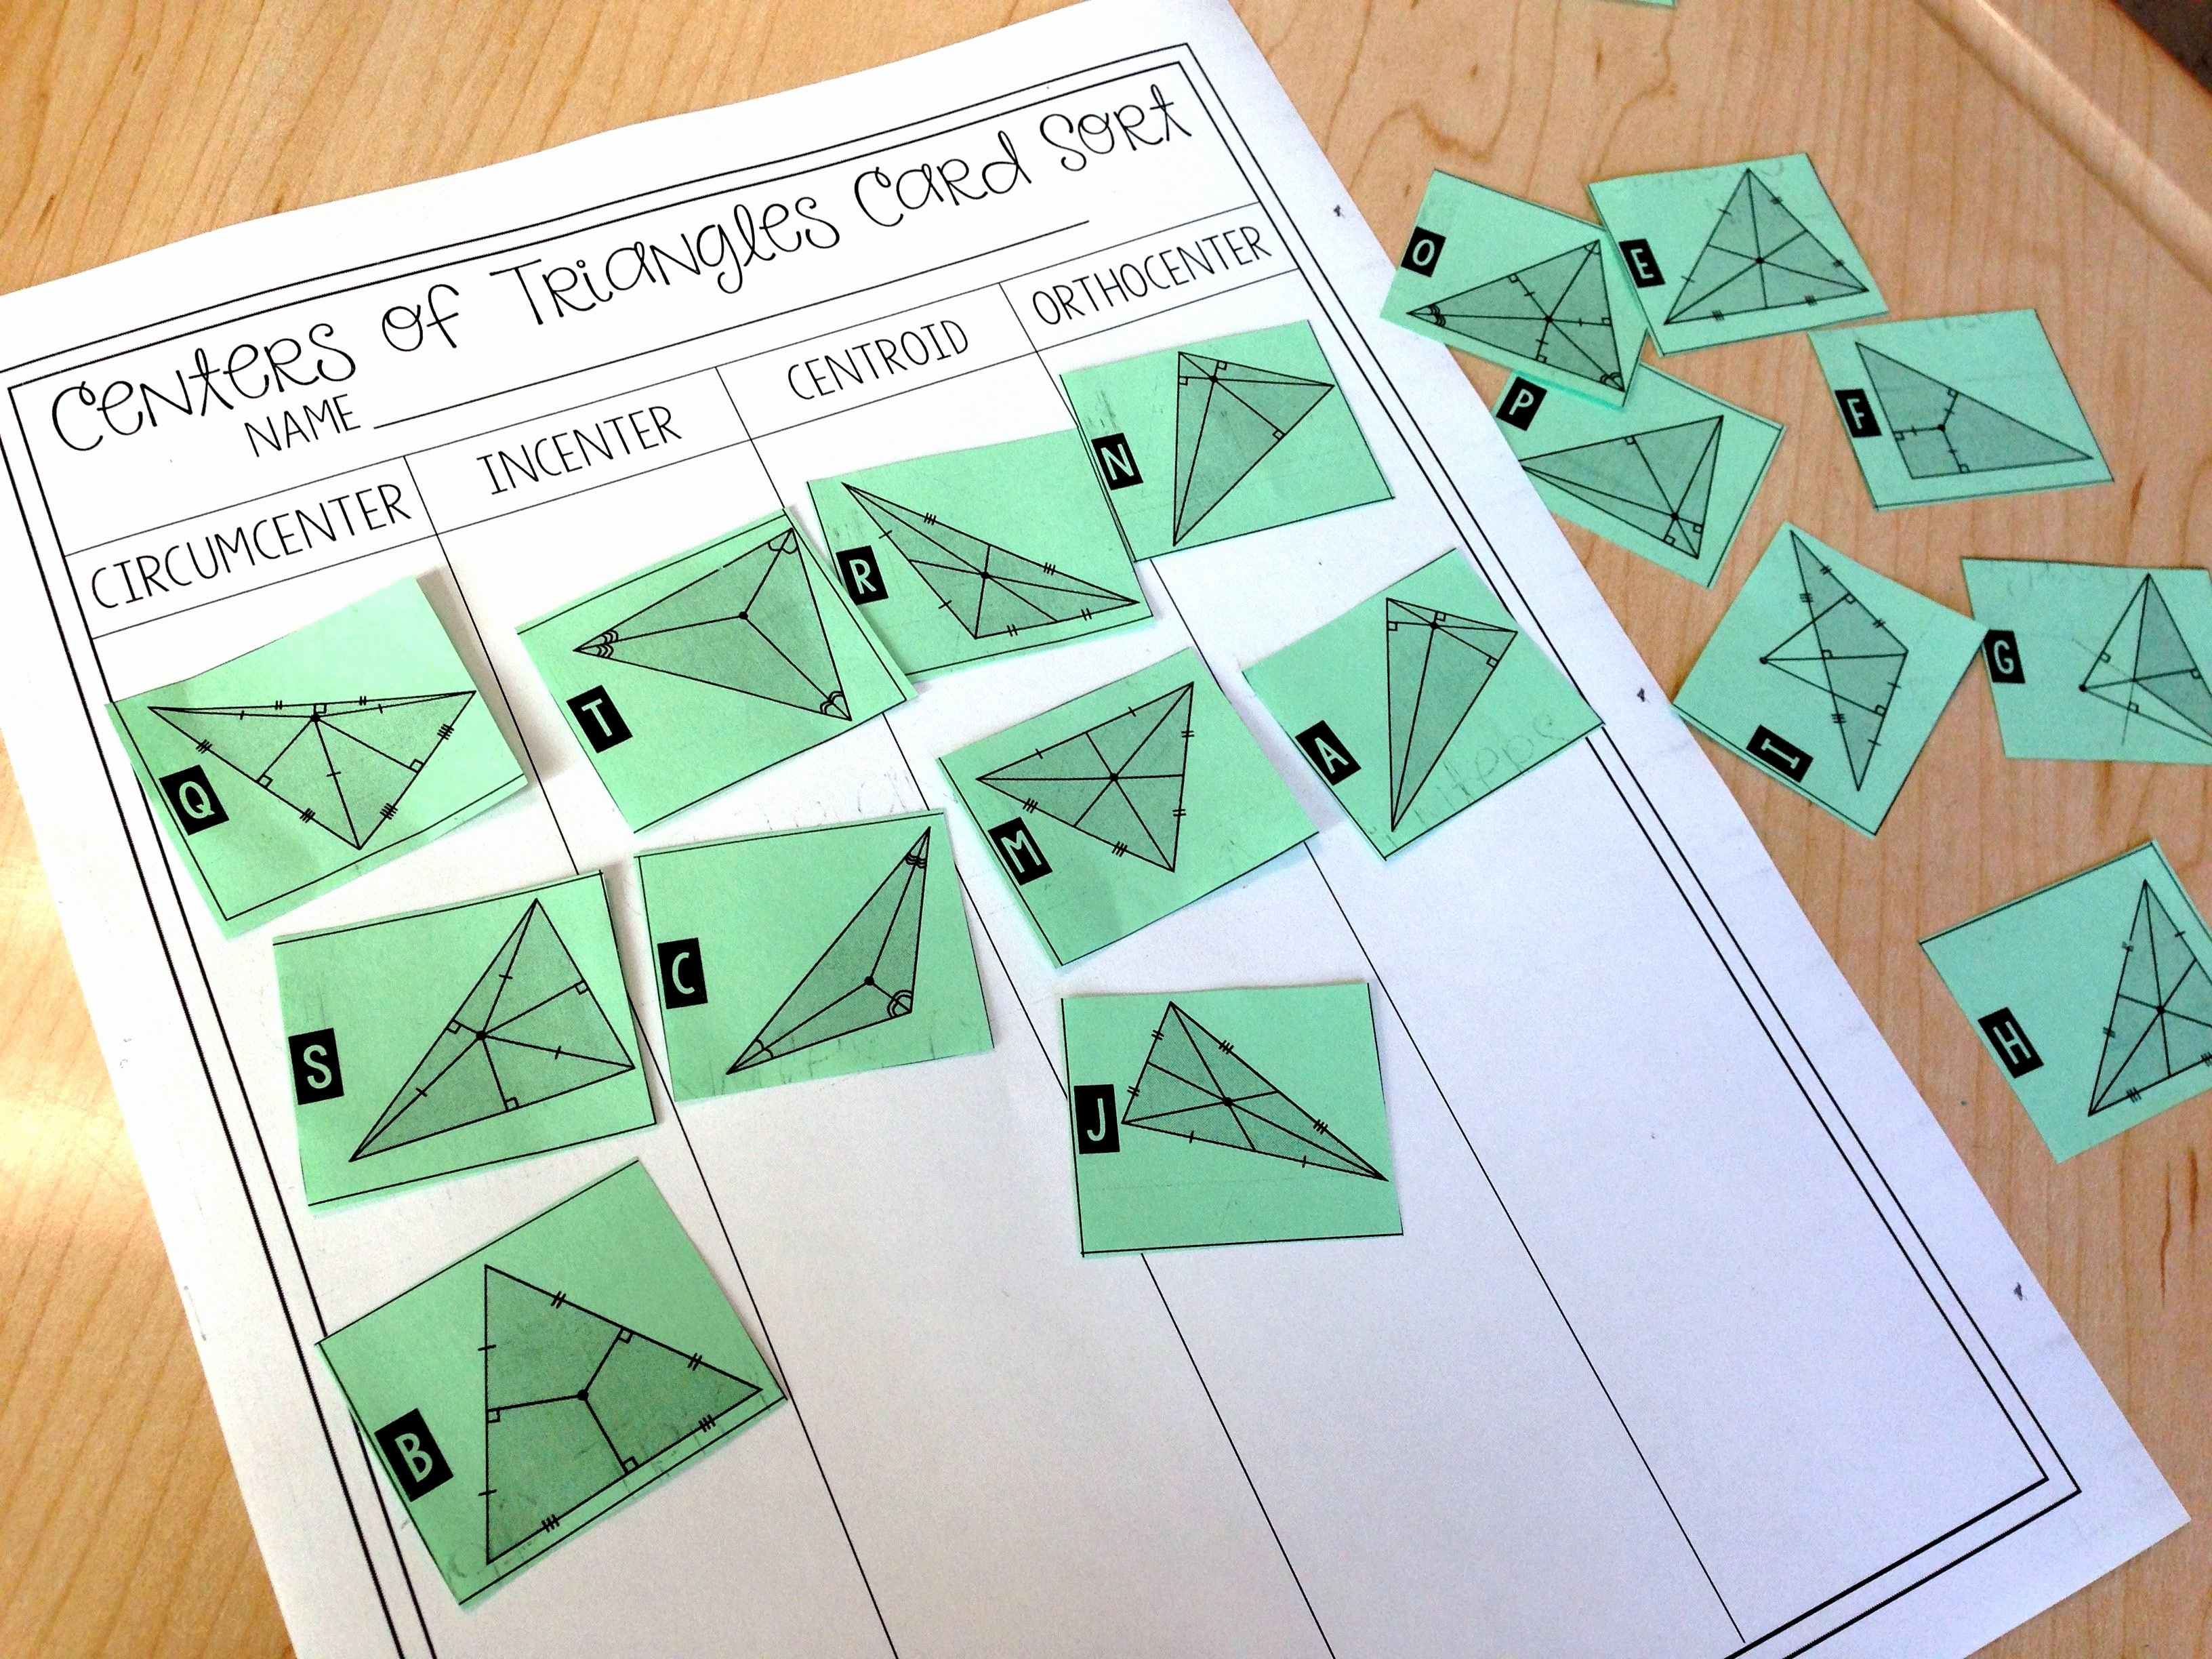 Centers Of Triangles Worksheet Best Of Centers Of Triangles Card sort